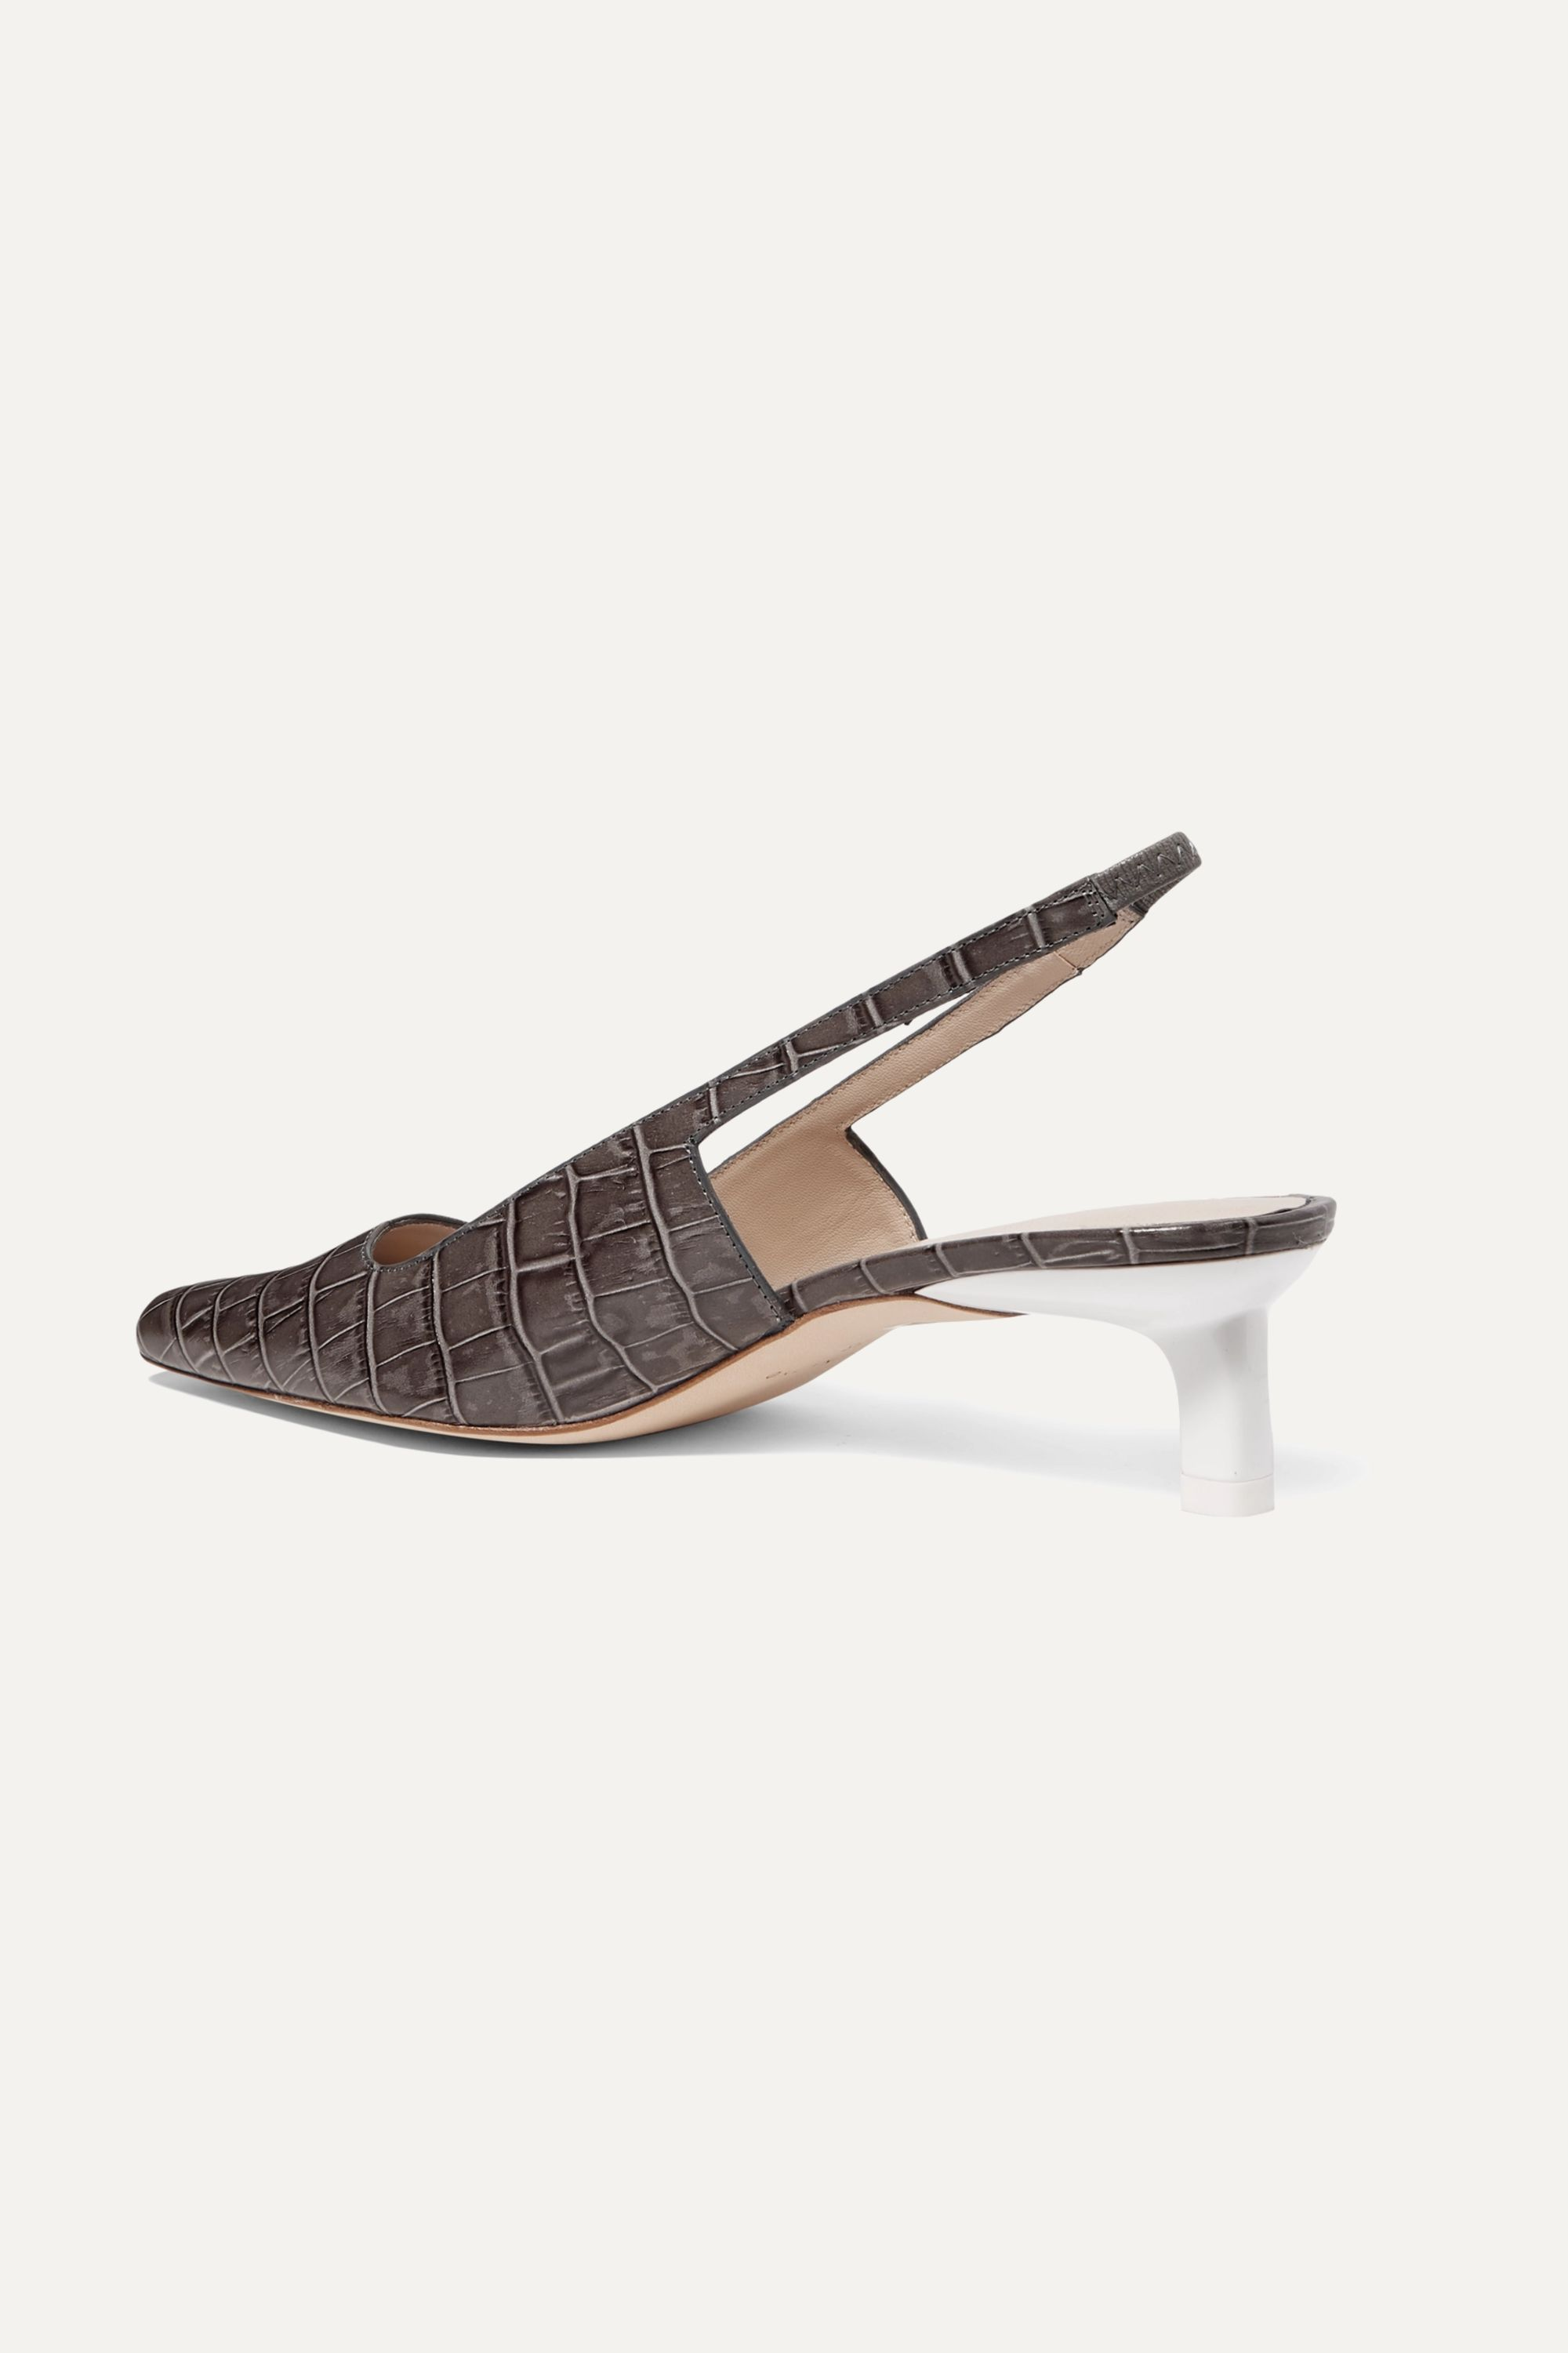 REJINA PYO Lois croc-effect leather slingback pumps